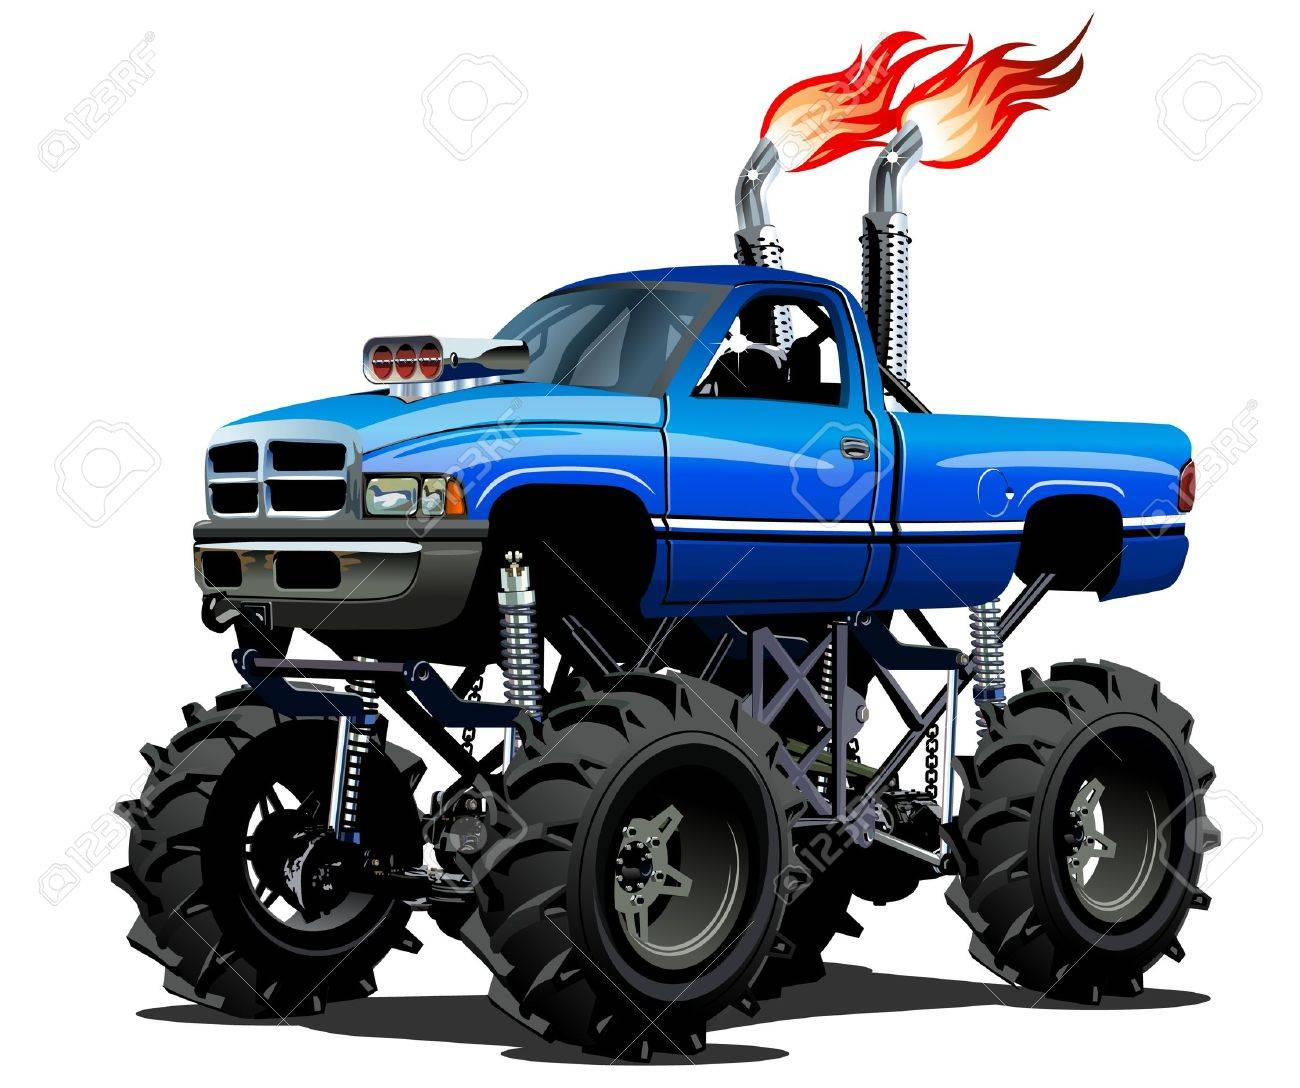 Cartoon Monster Truck Available Eps 10 Separated By Groups And Royalty Free Cliparts Vectors And Stock Illustration Image 42844009